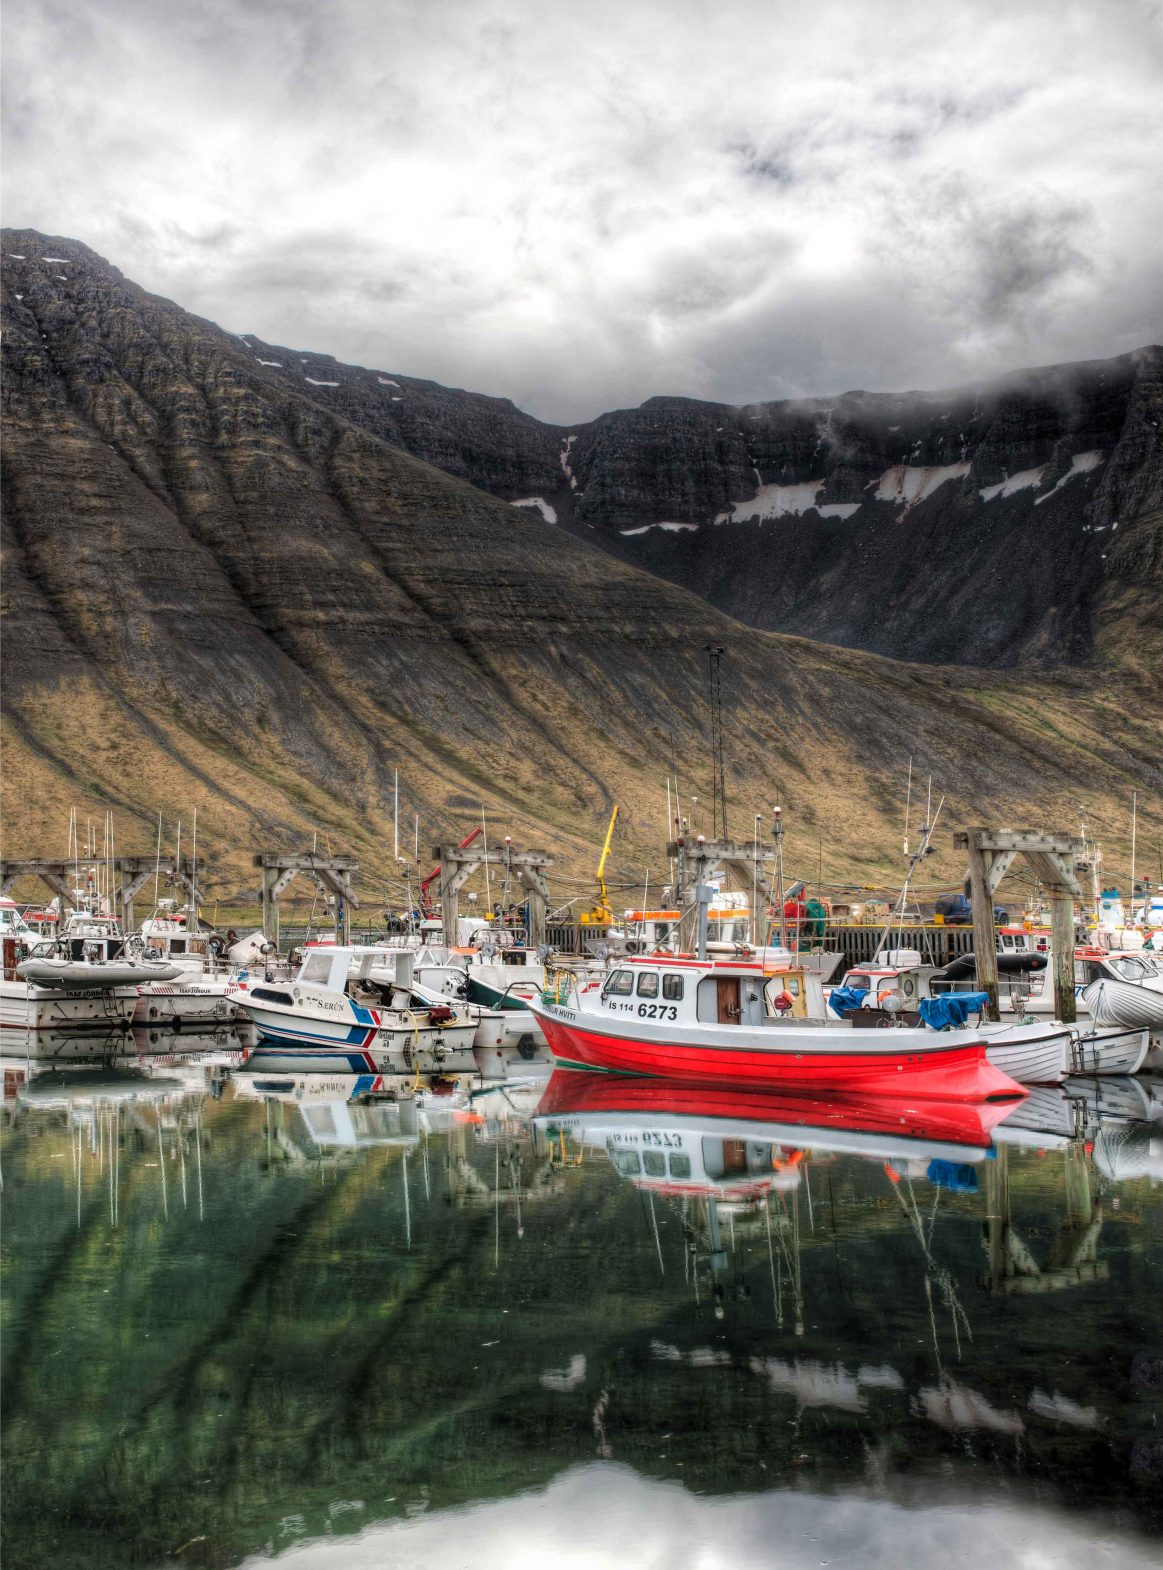 The fishing boats look picturesque against the mountains in the village of Ísafjörður